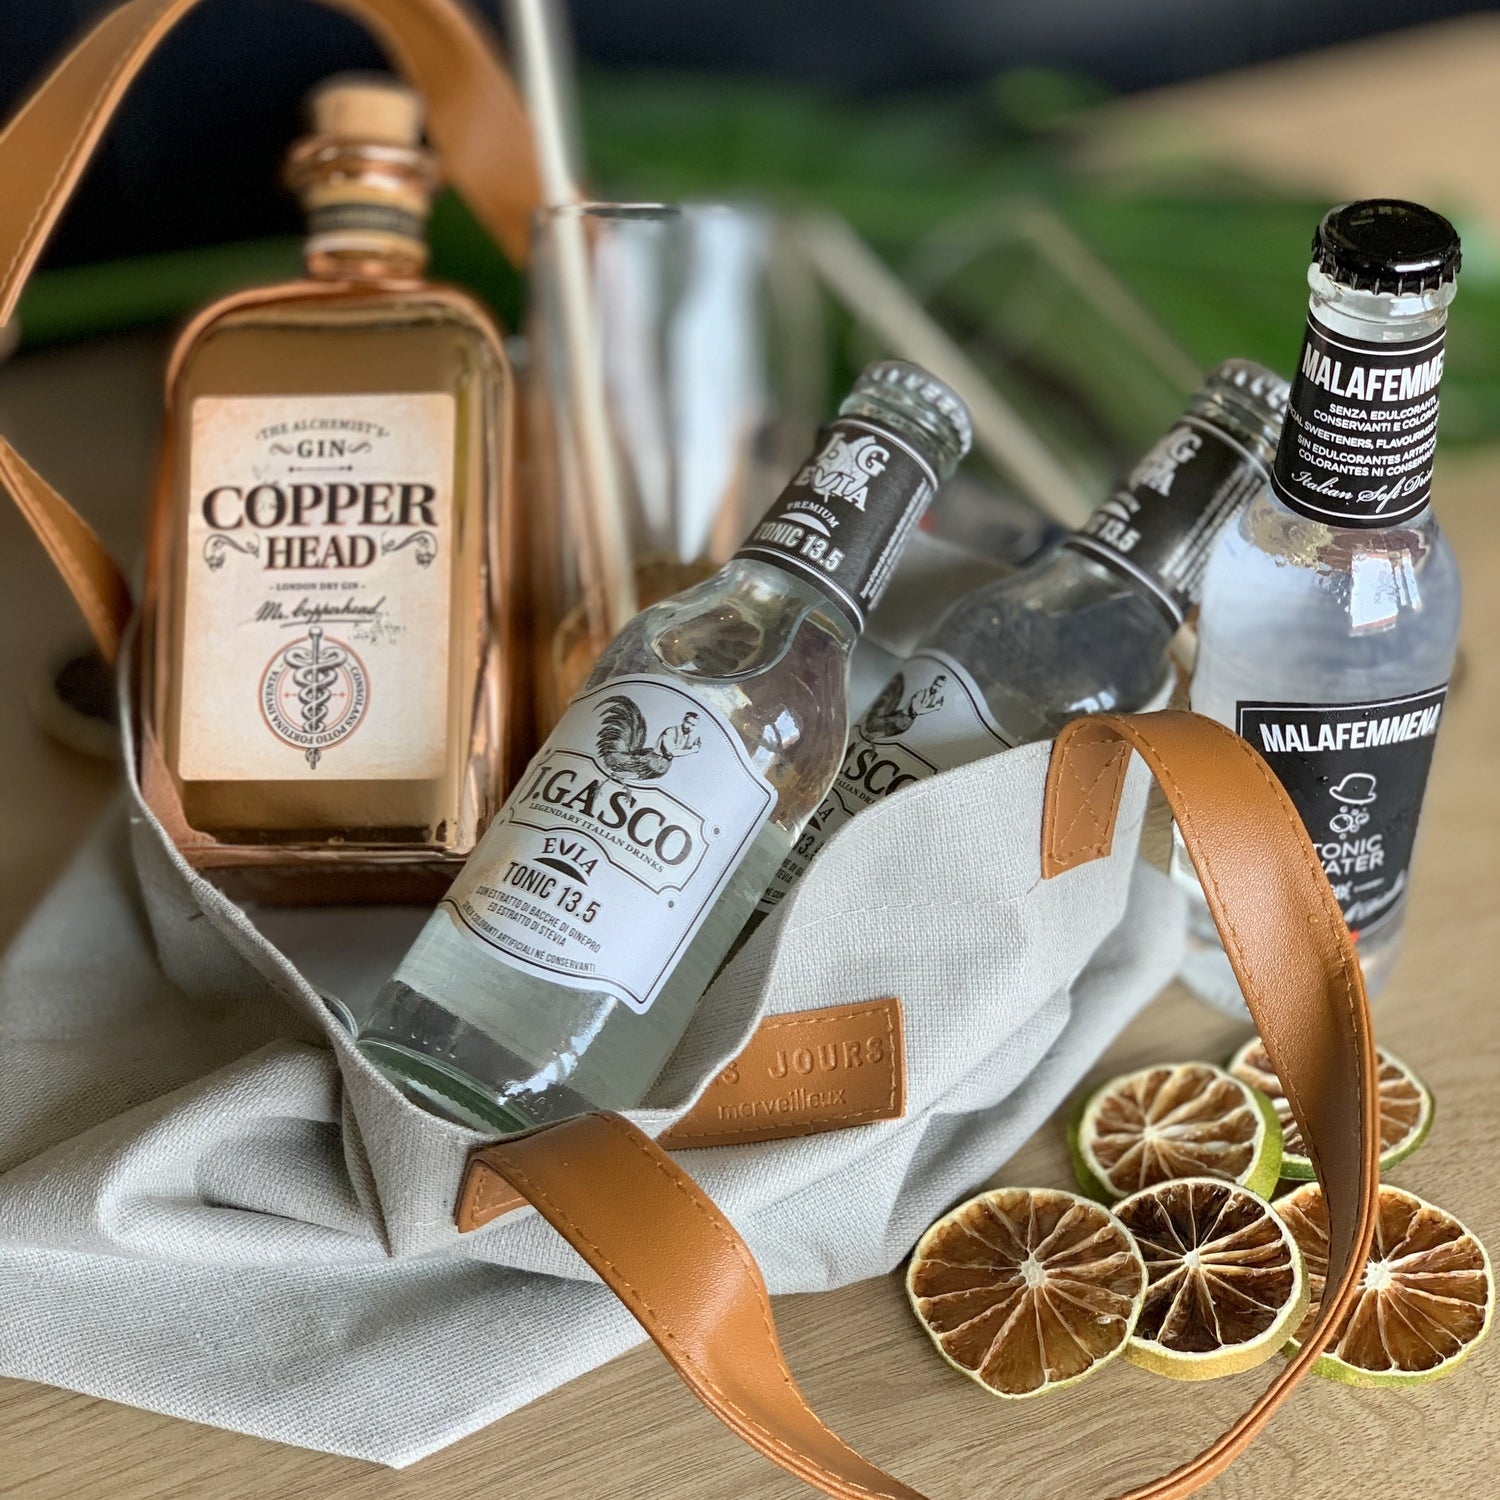 Copperhead Gin 'To-Go' Gin & Tonics